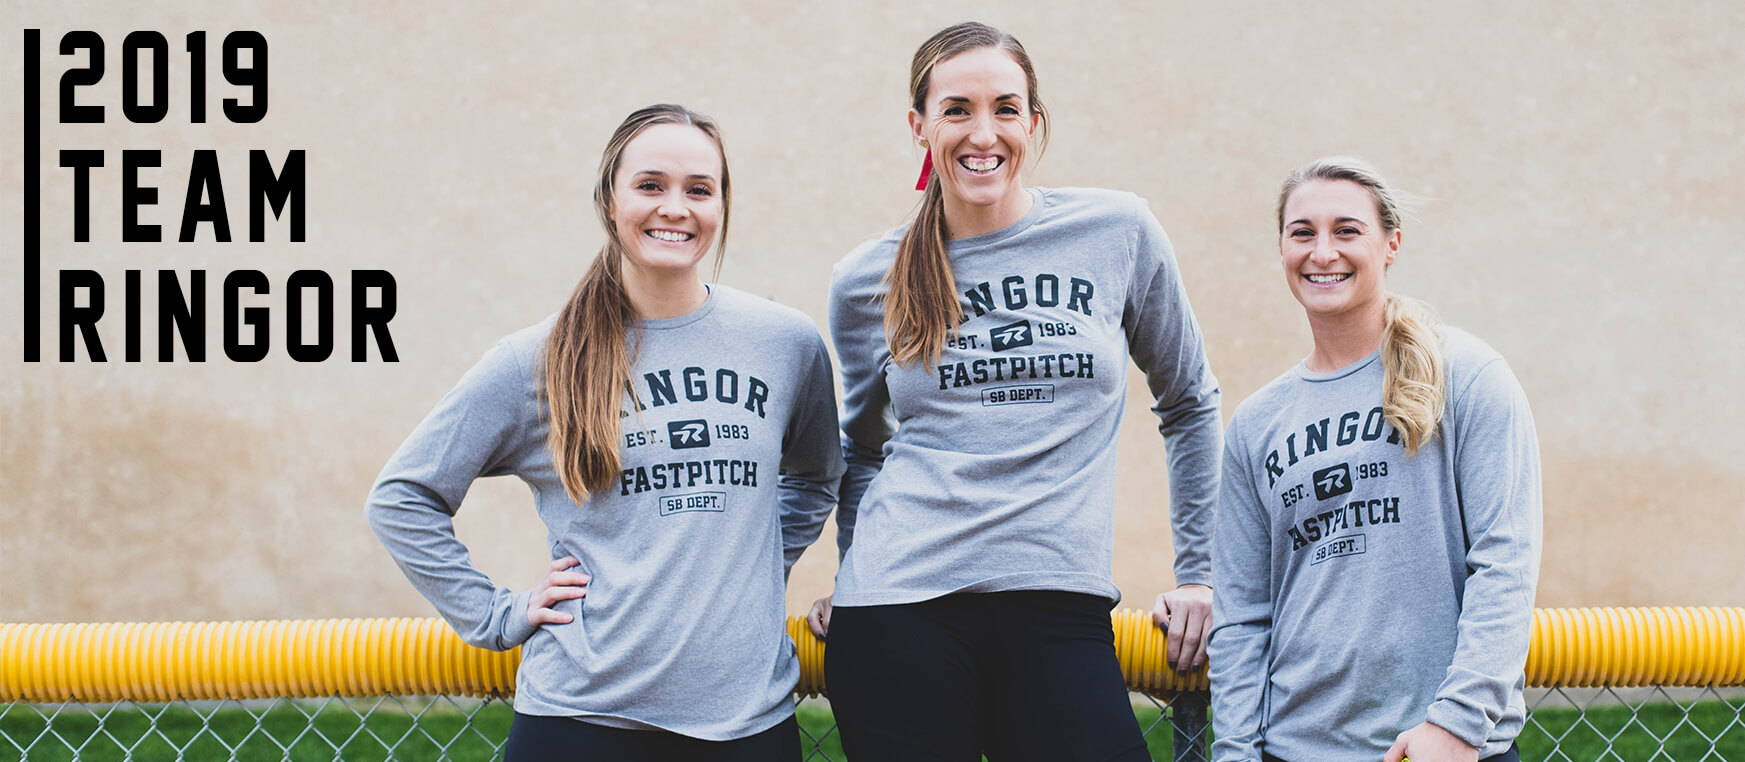 Team Ringor 2019, Ali Aguilar, Monica Abbott, Kirsti Merritt and Courtney Gano.